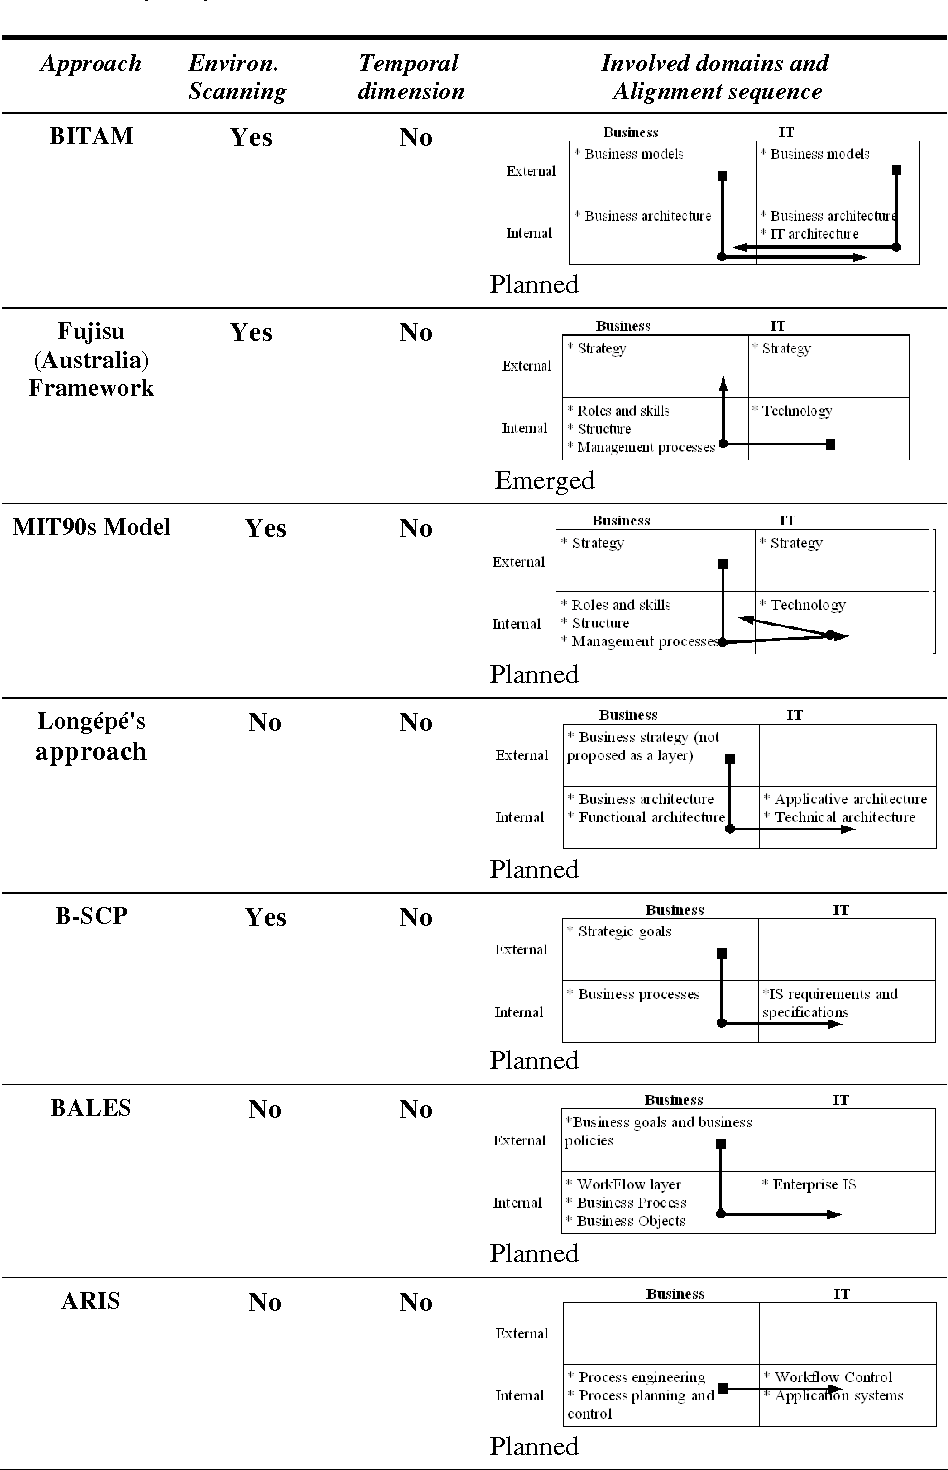 Table 2. Analysis Synthesis